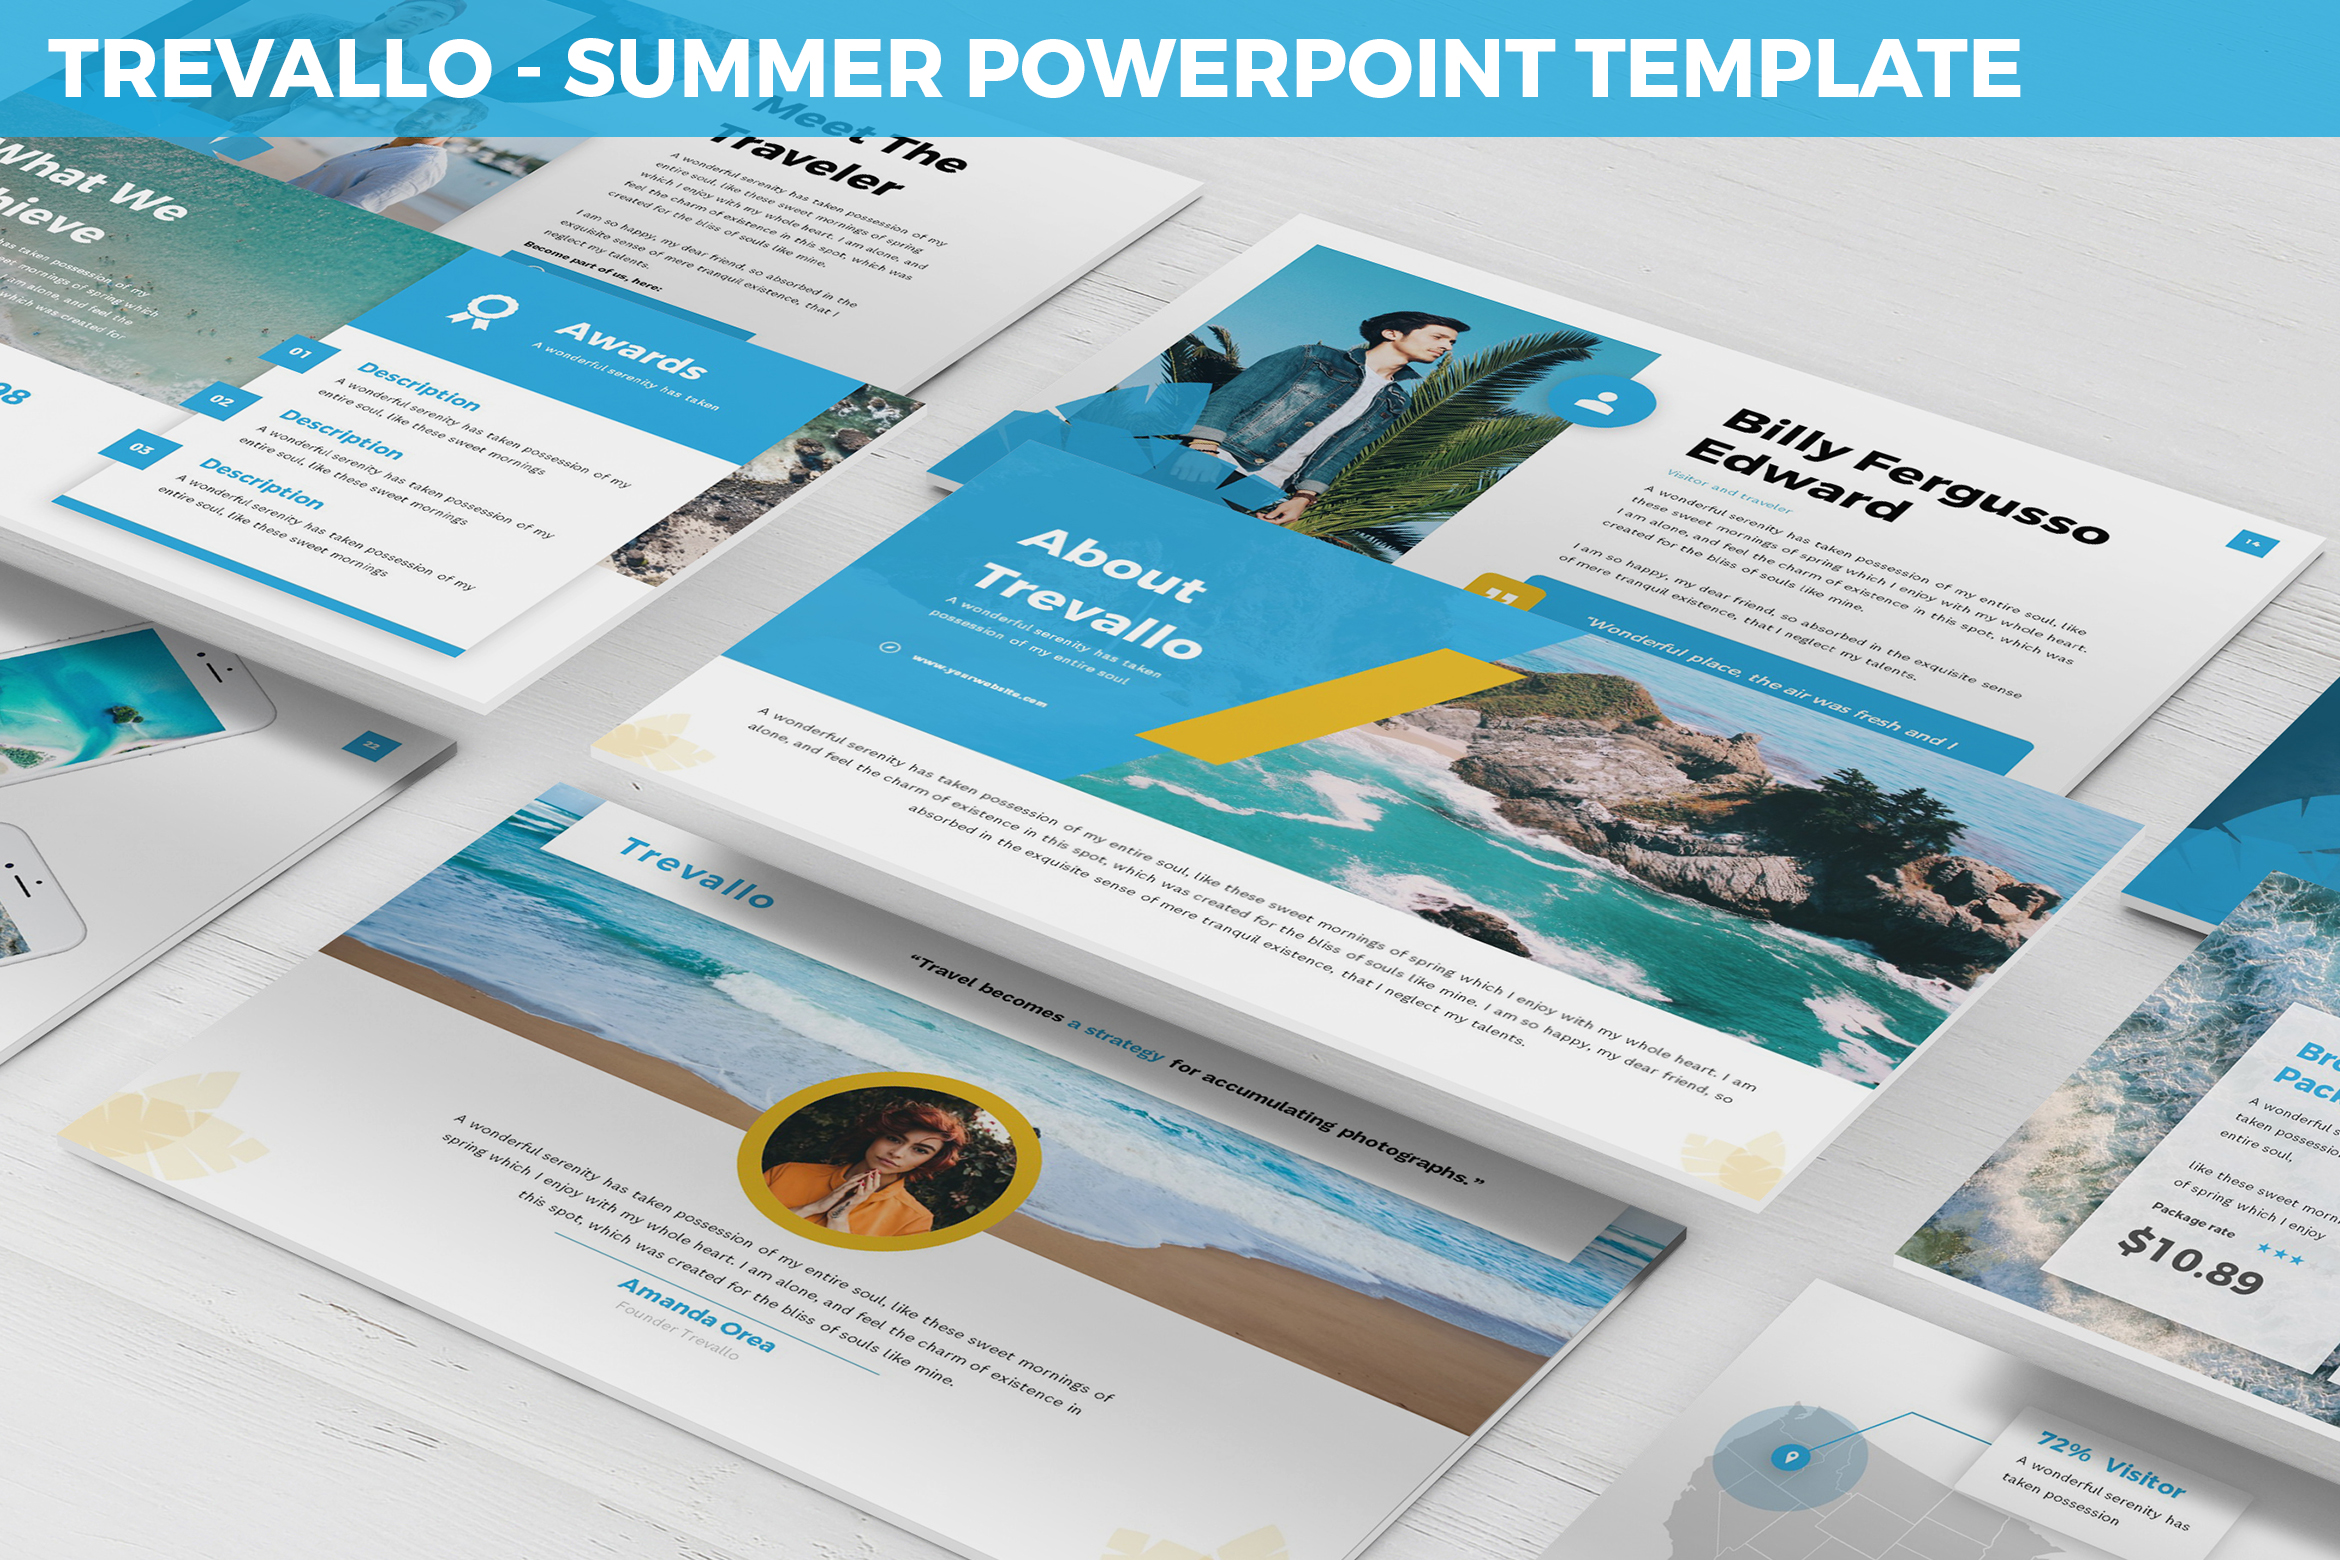 Trevallo - Summer Powerpoint Template example image 1